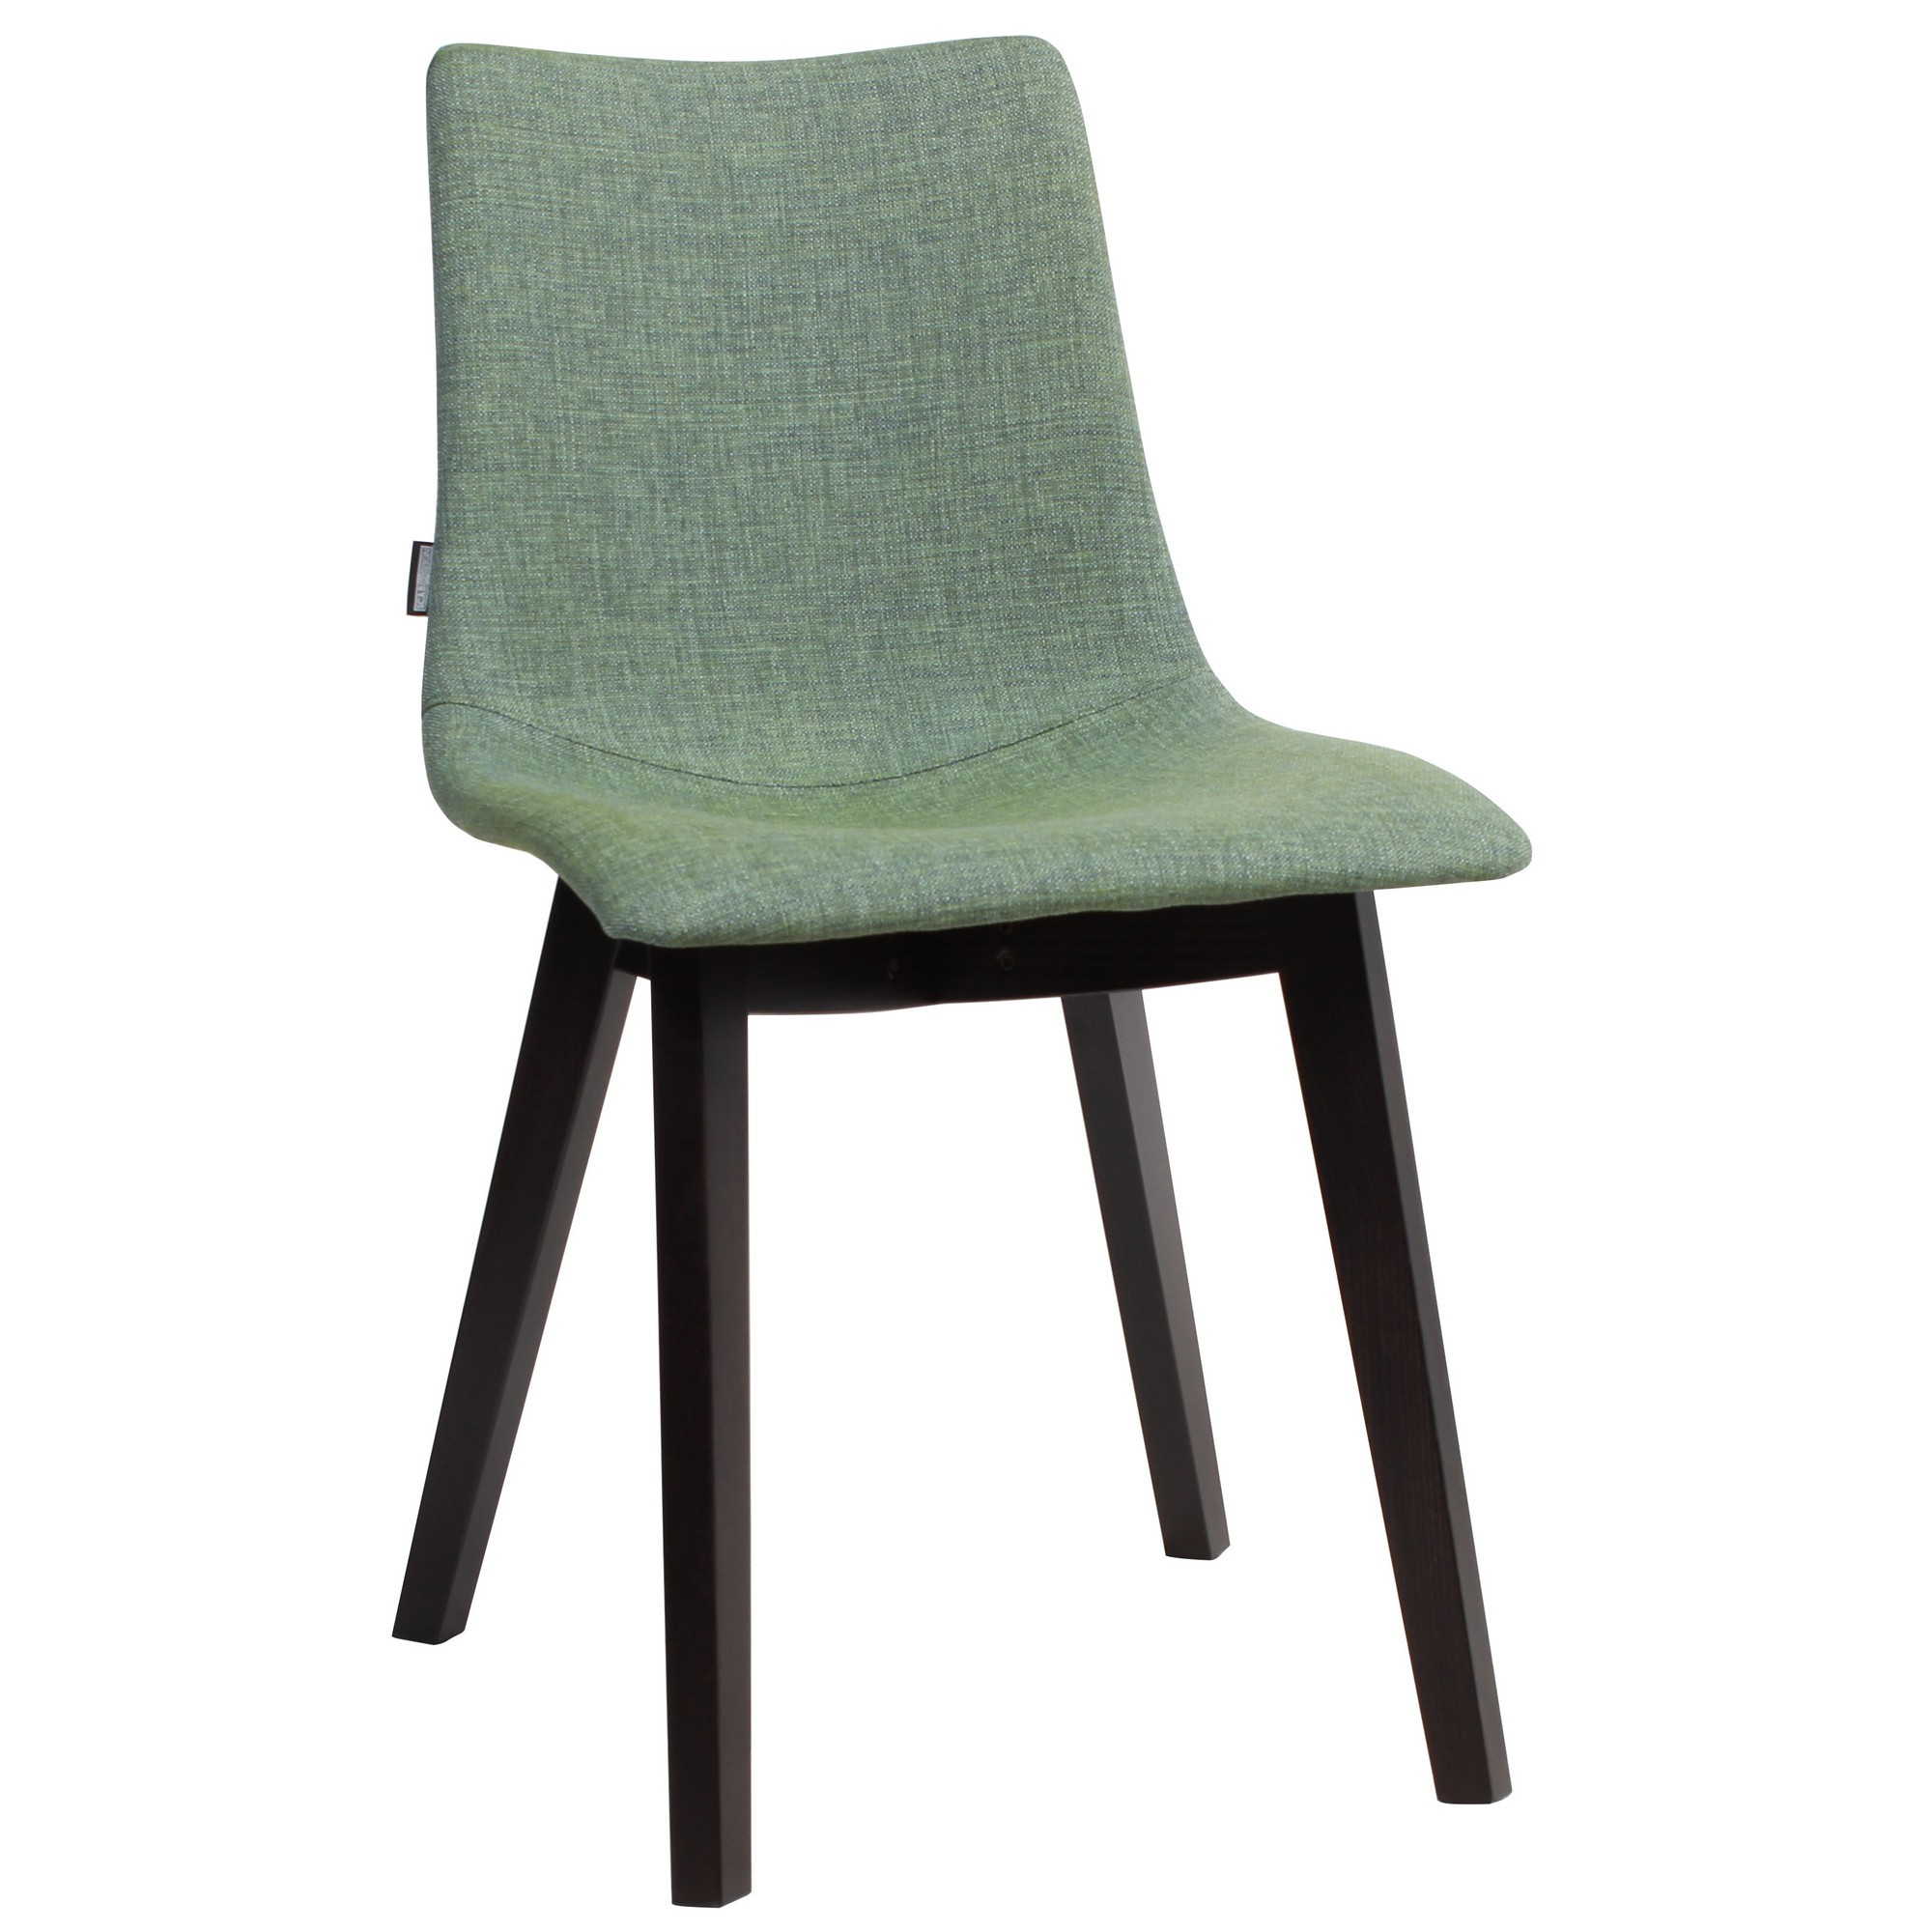 Zebra Pop Italian Made Commercial Grade Fabric Dining Chair, Timber Leg, Jade / Wenge